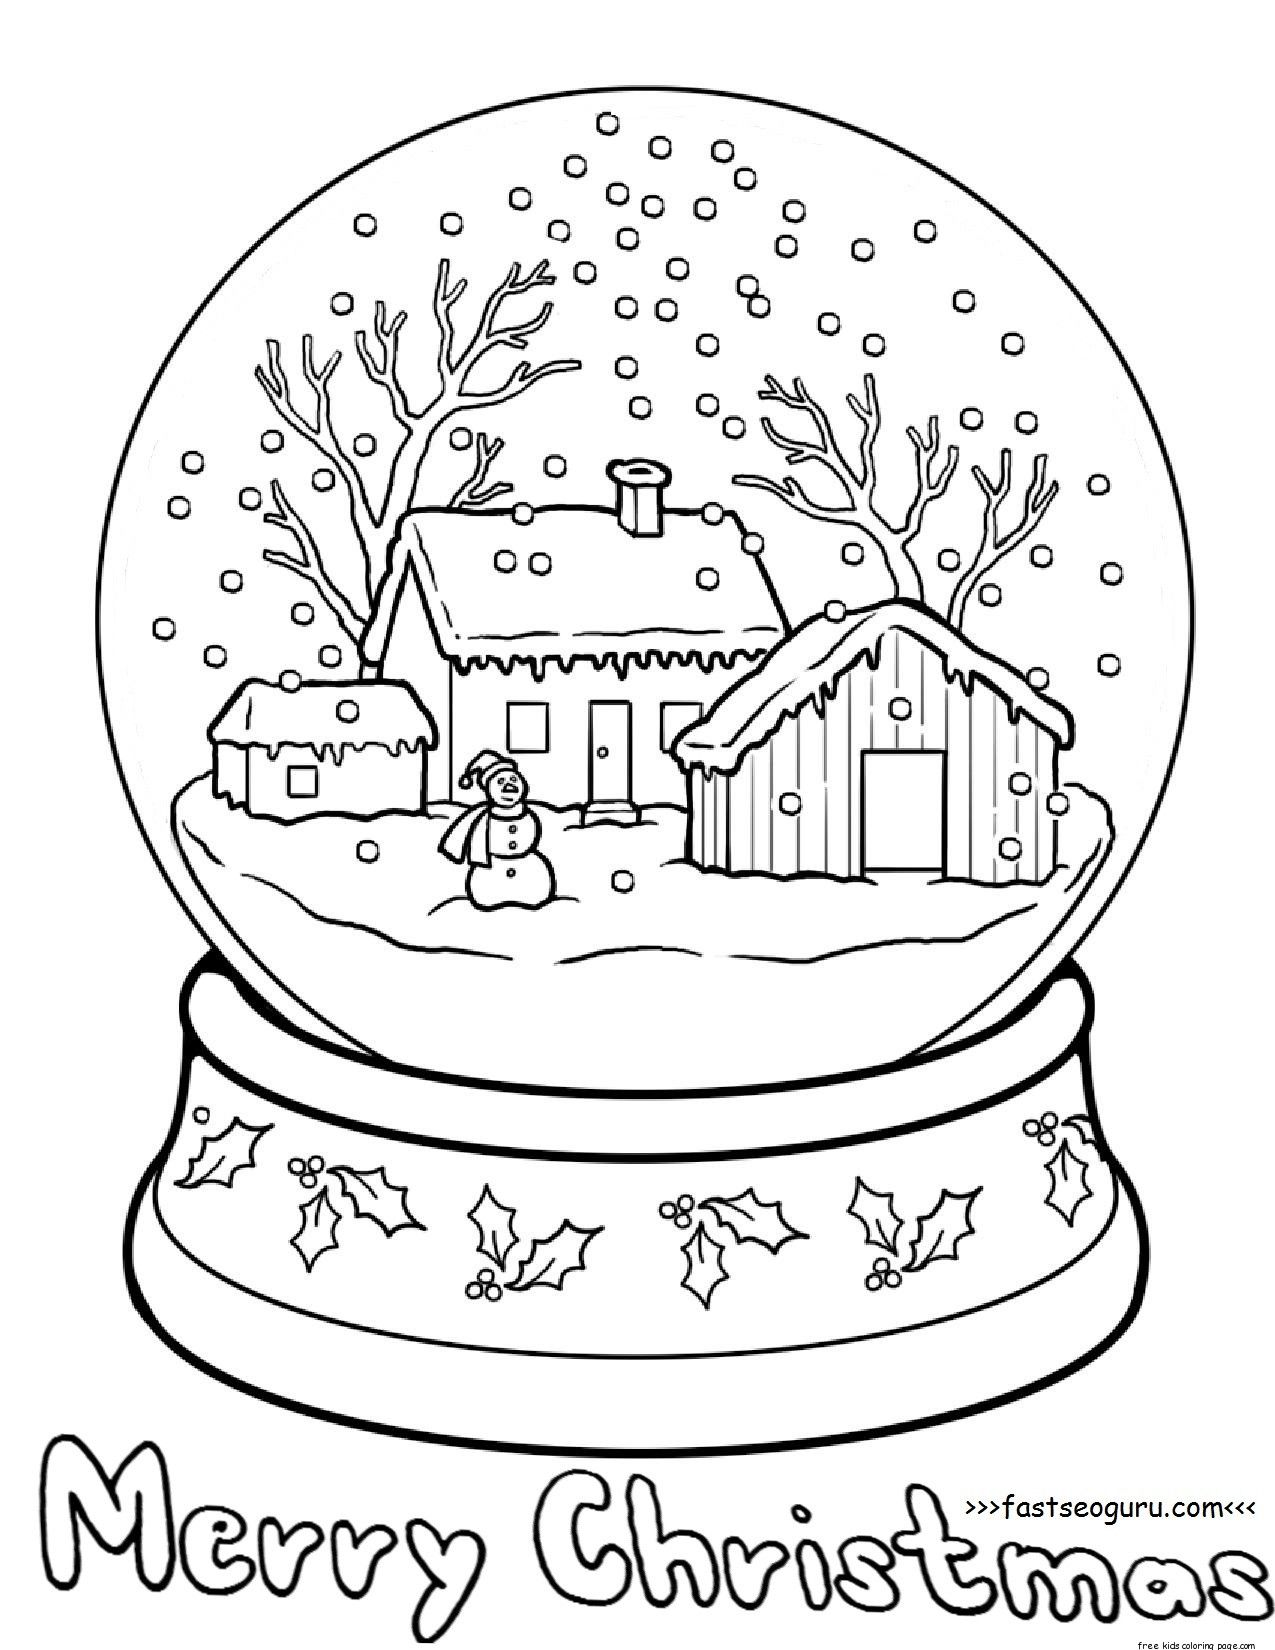 globe coloring page - cmscorpion | Crafts | Pinterest | Navidad ...